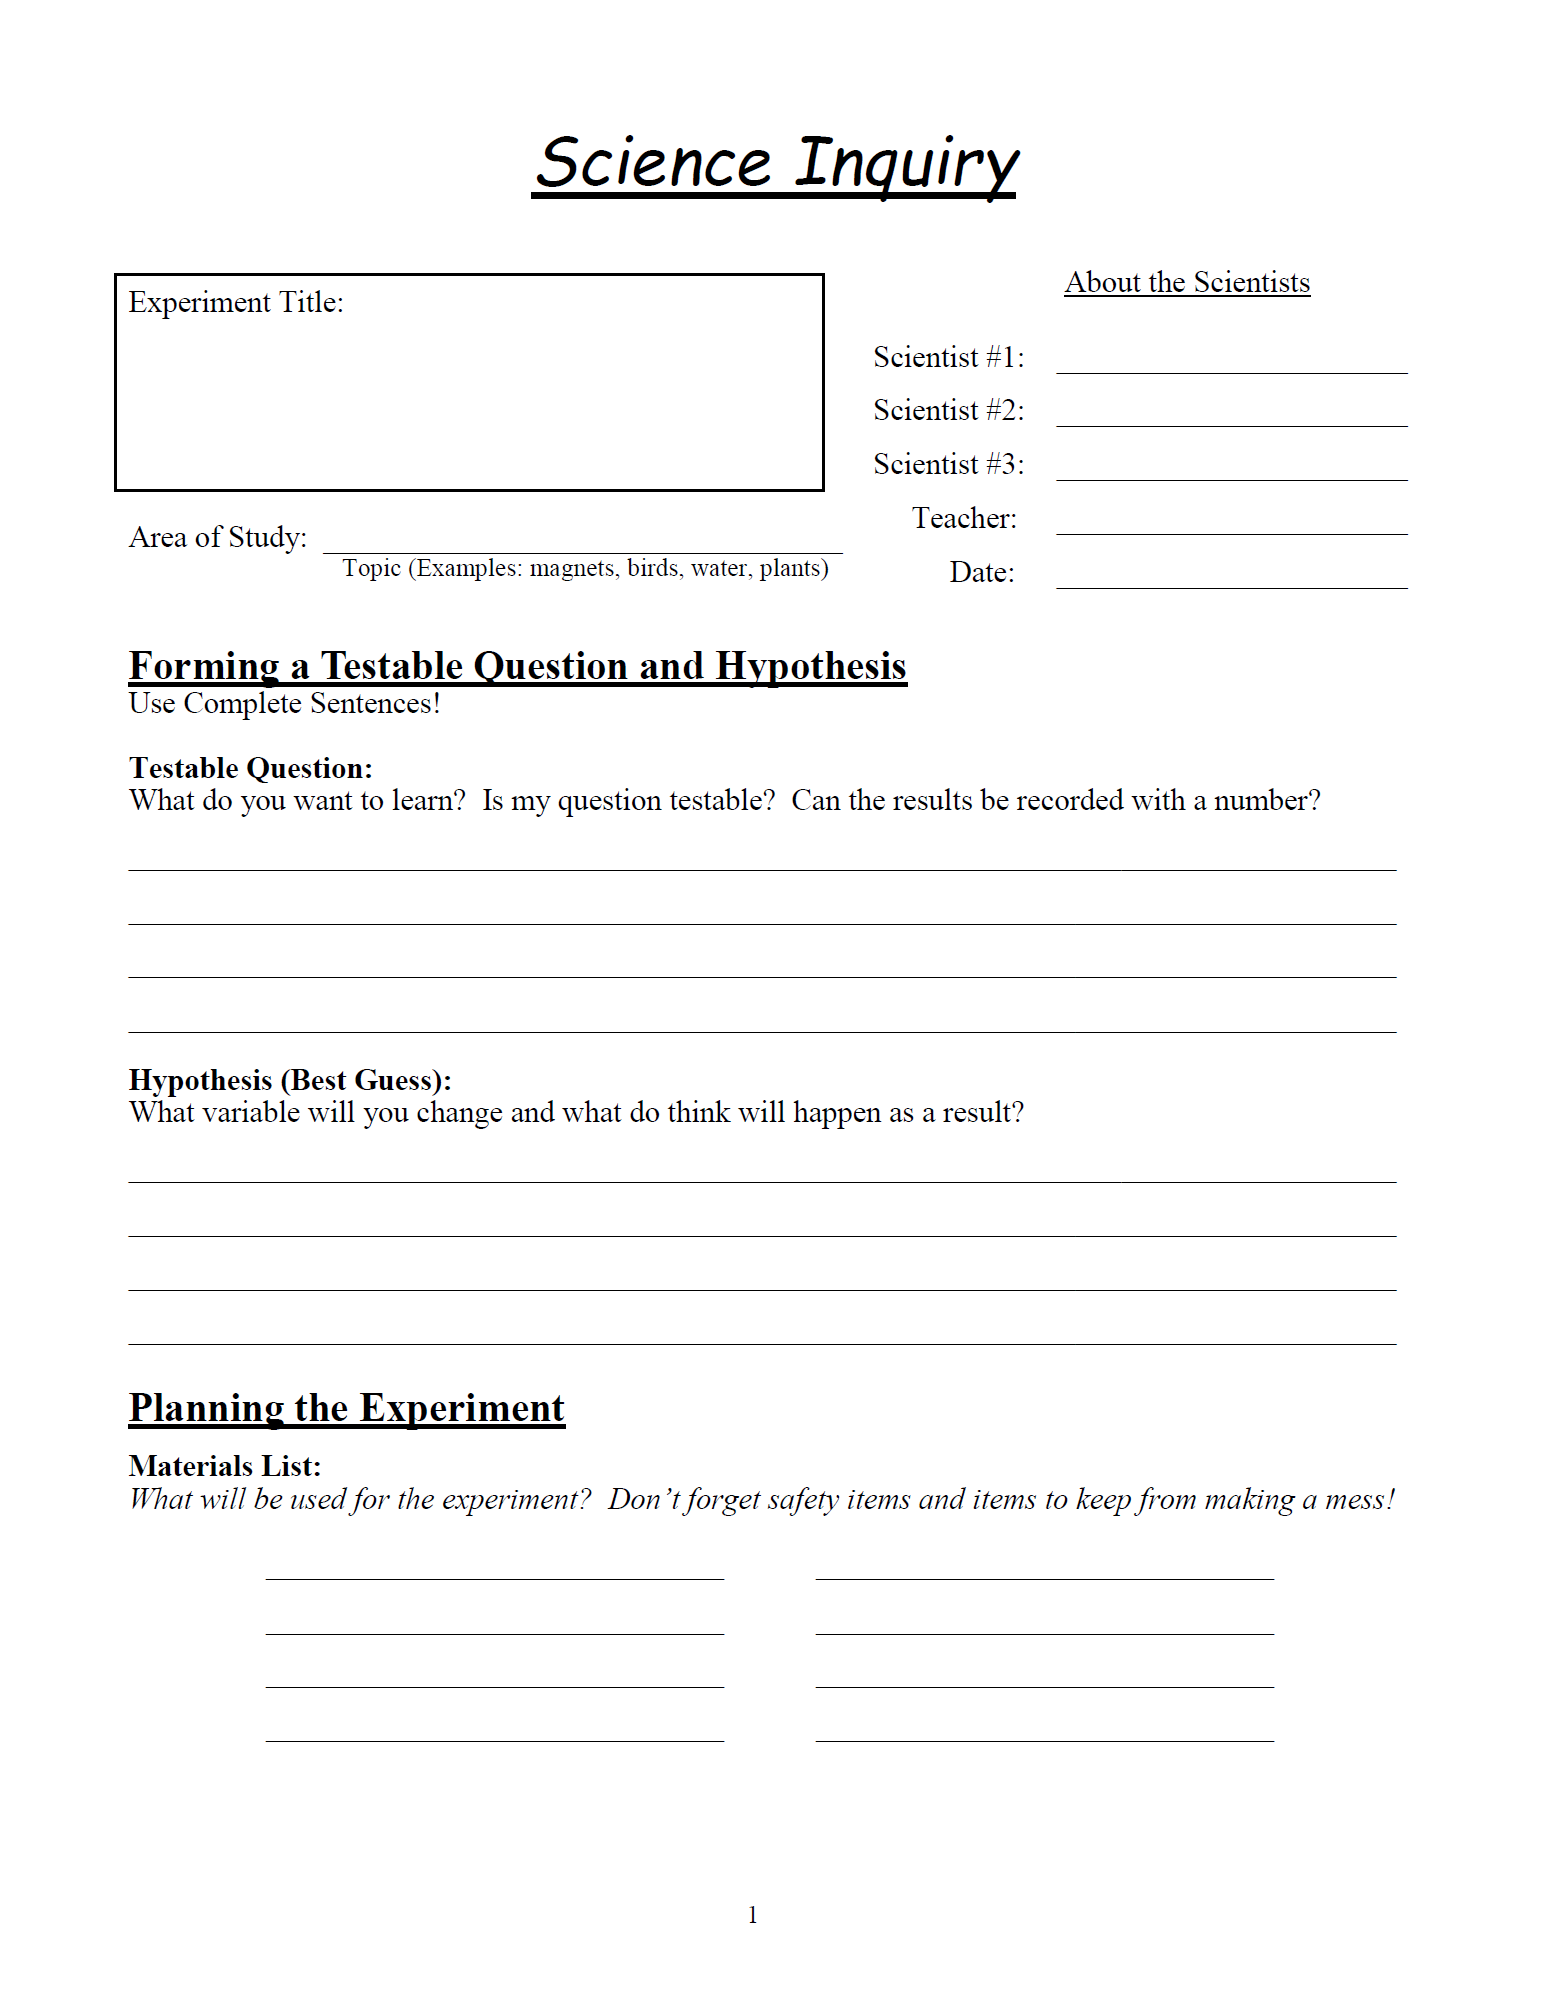 Free Science Inquiry Worksheets Multiple Pages In